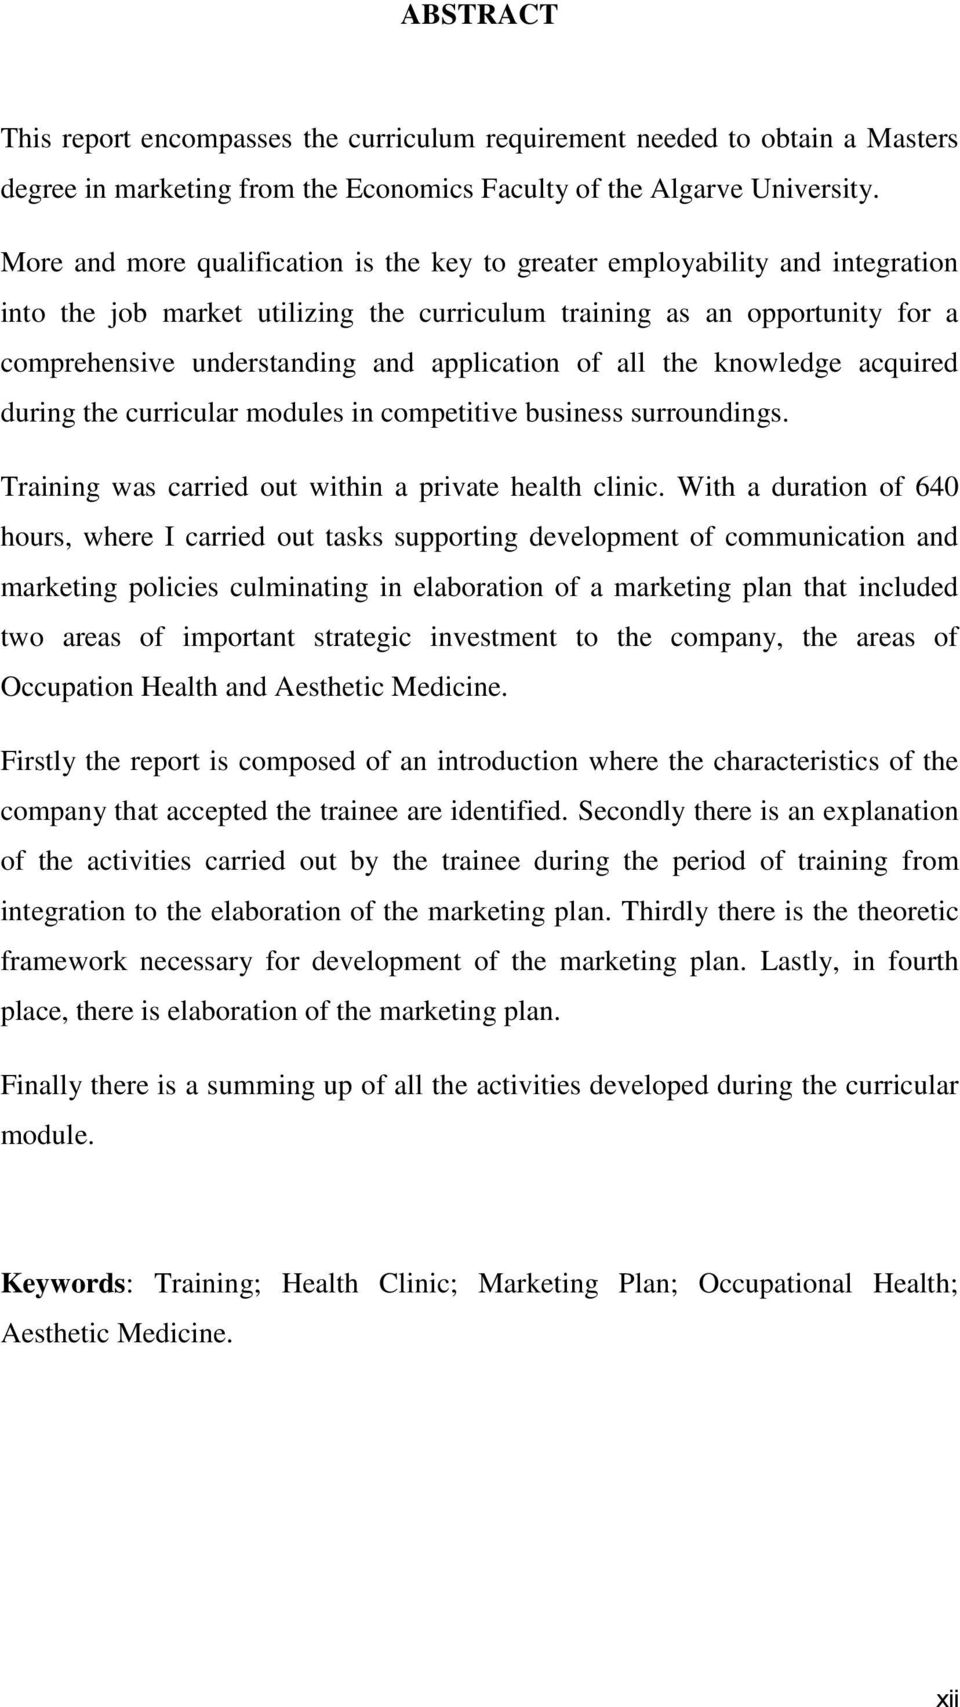 application of all the knowledge acquired during the curricular modules in competitive business surroundings. Training was carried out within a private health clinic.